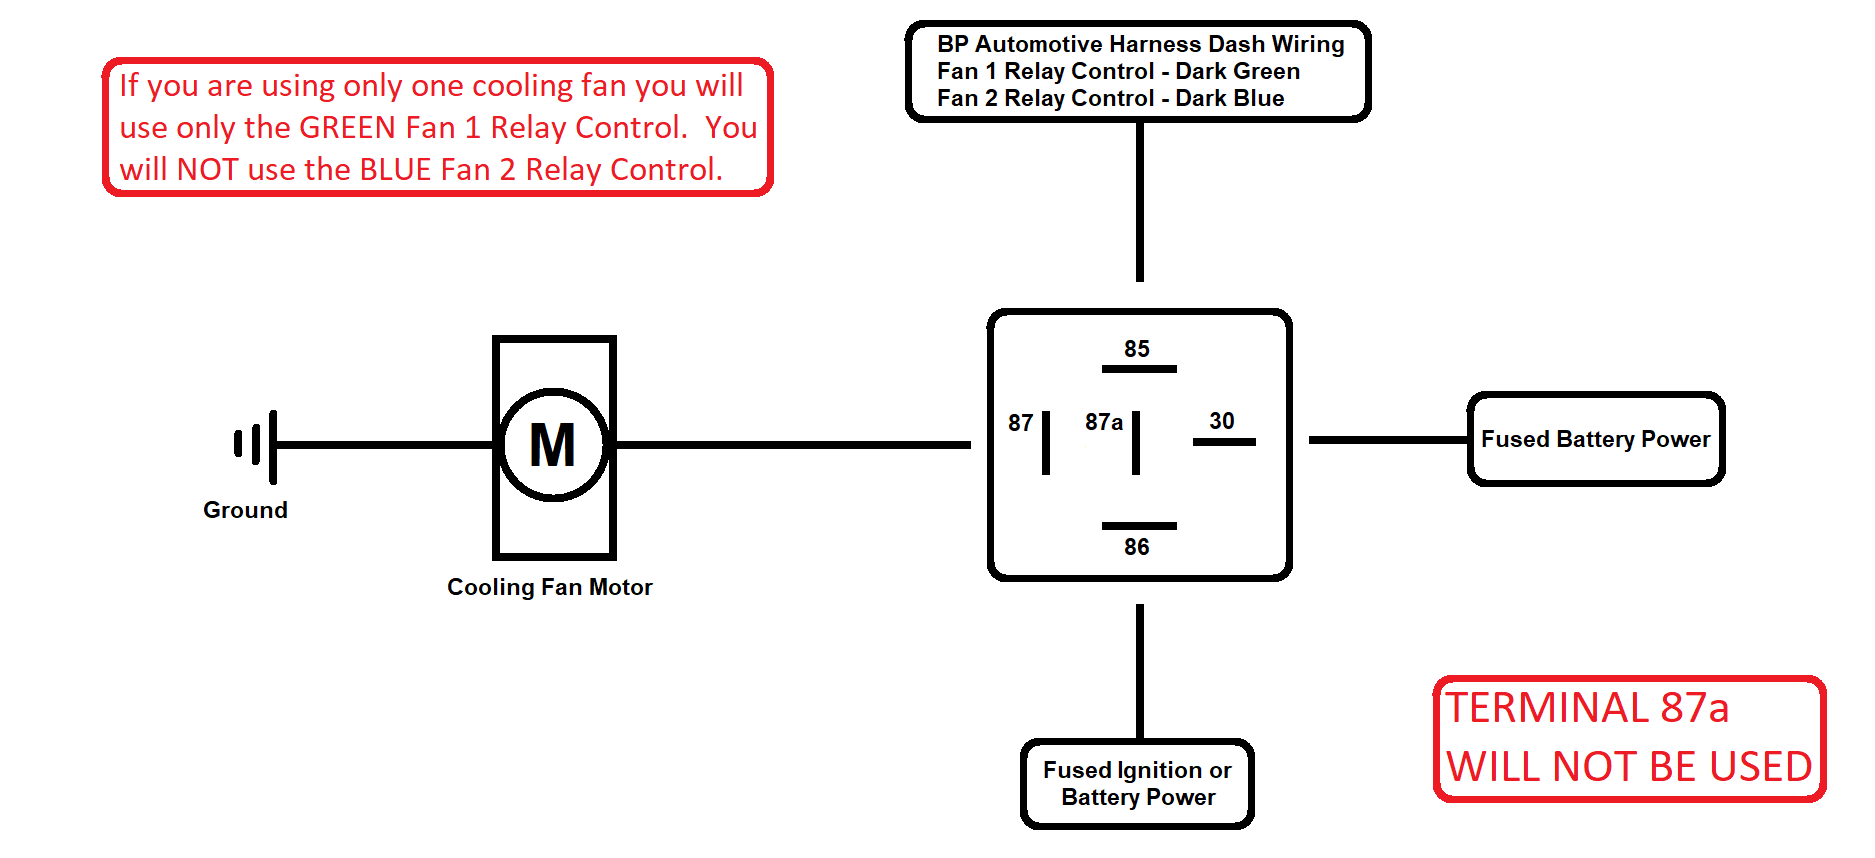 Manual Electric Fan Wiring Diagram from www.bp-automotive.com